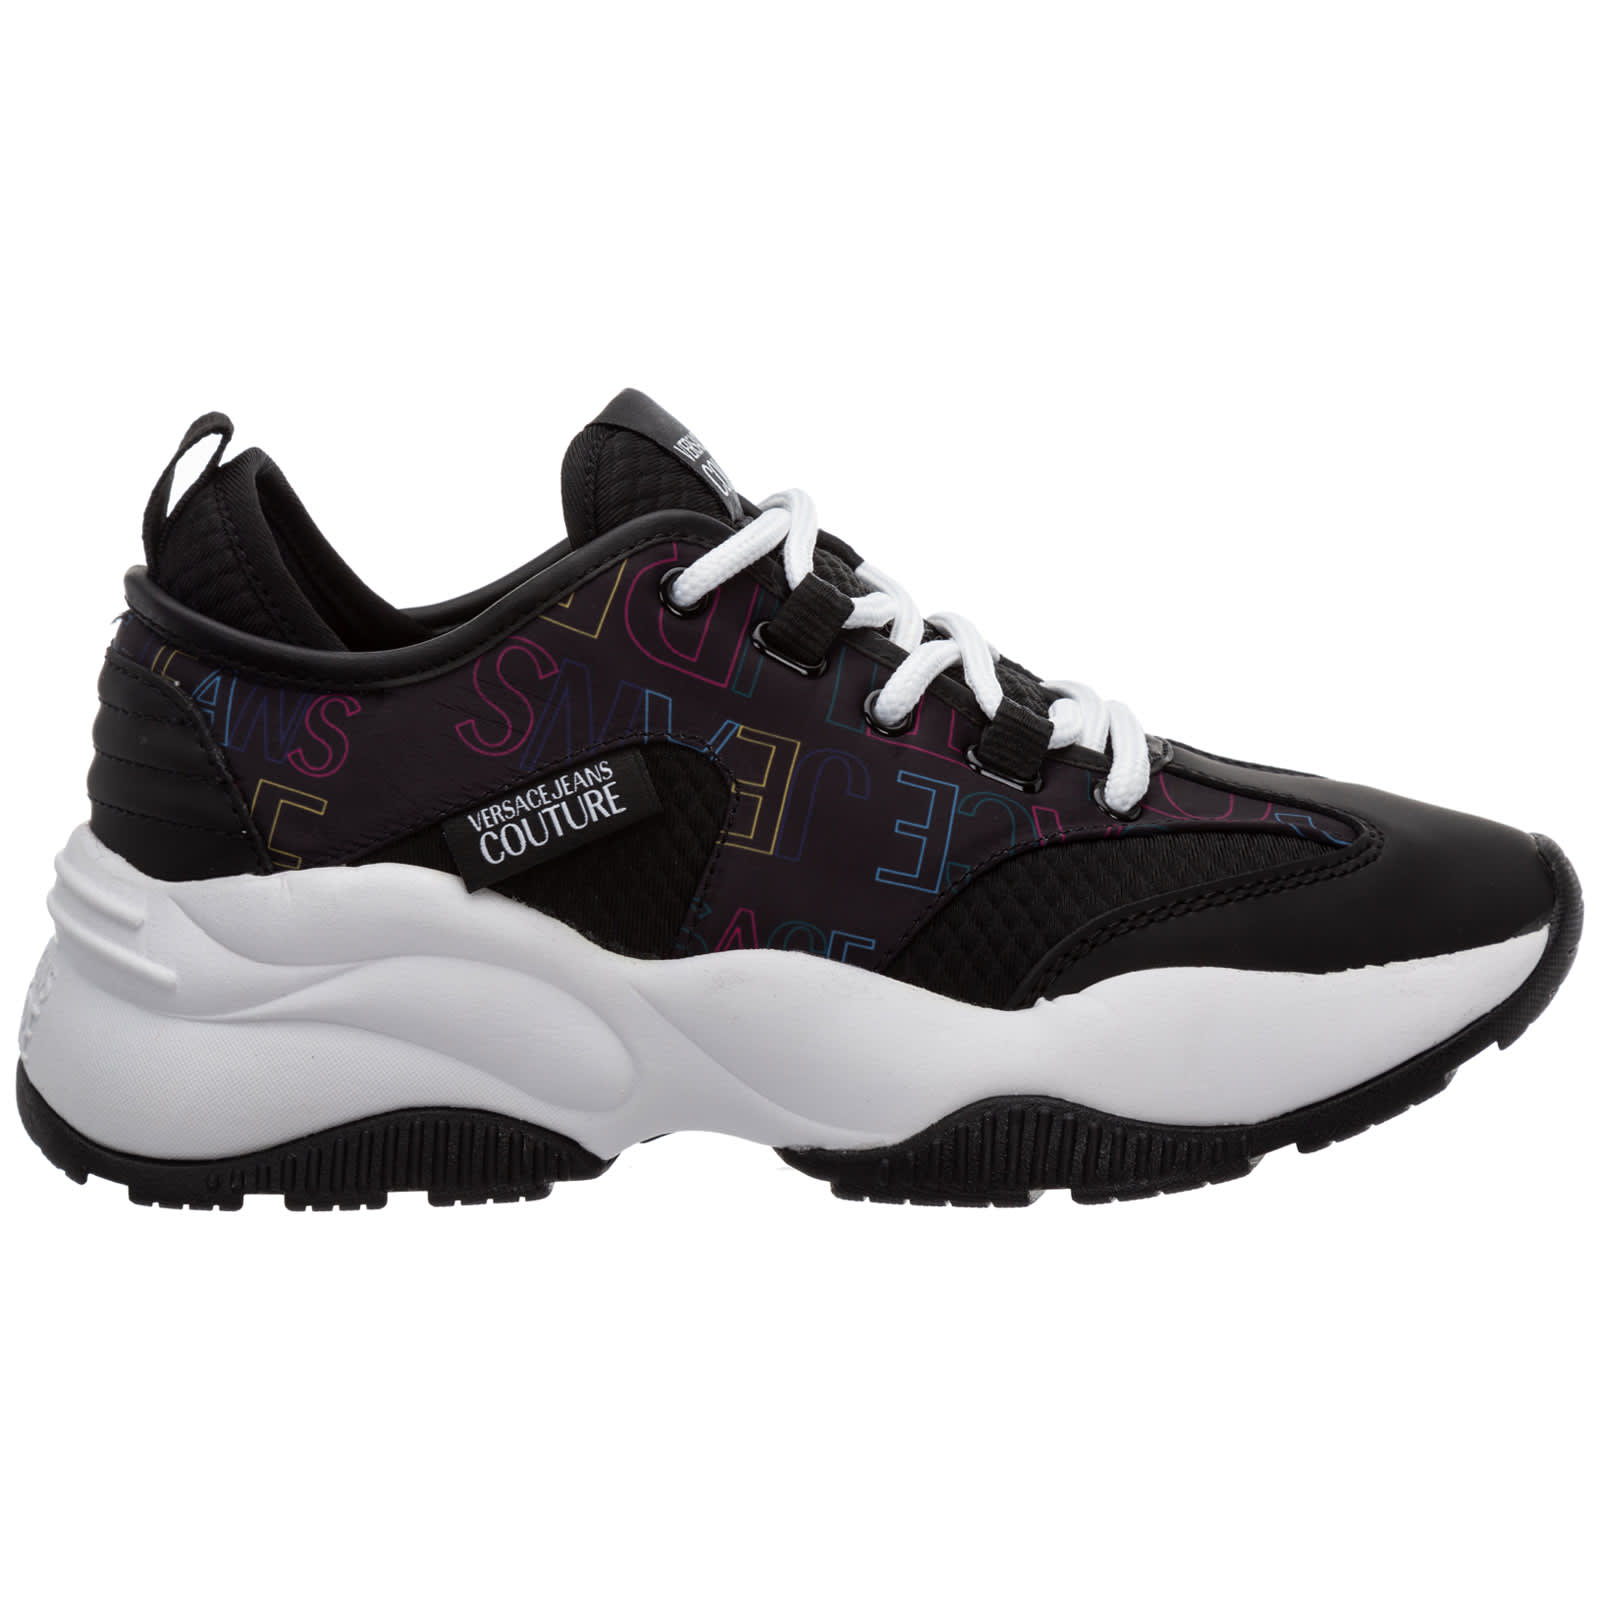 Versace Jeans Couture EXTREME SNEAKERS